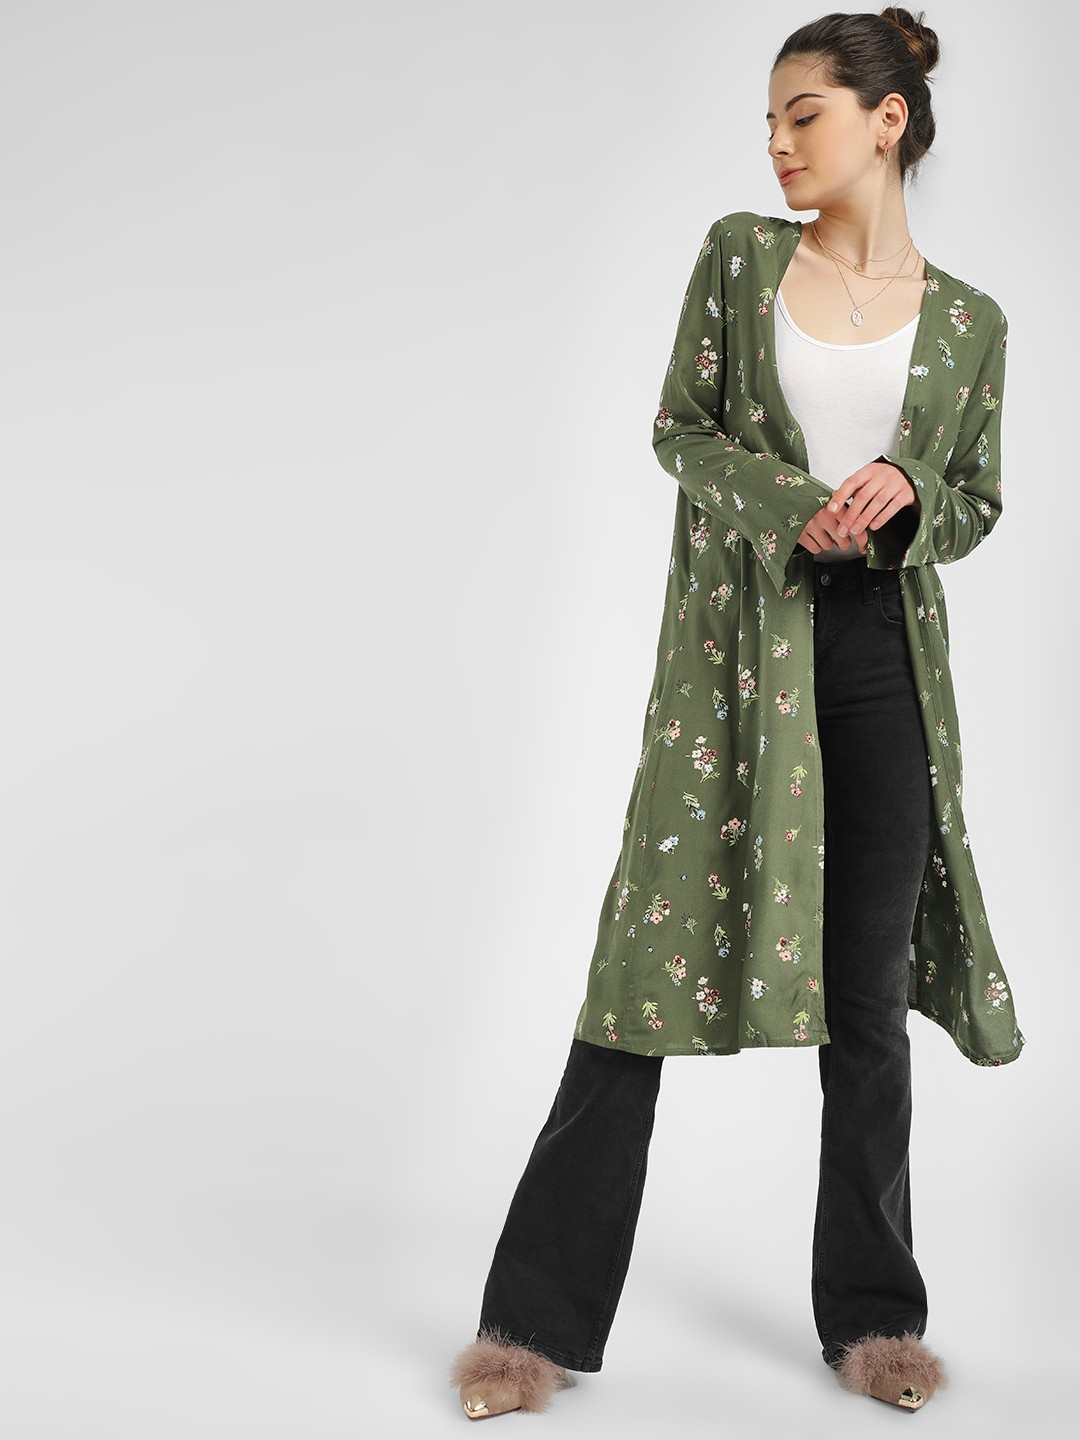 PostFold Green Floral Print Front Open Shrug 1